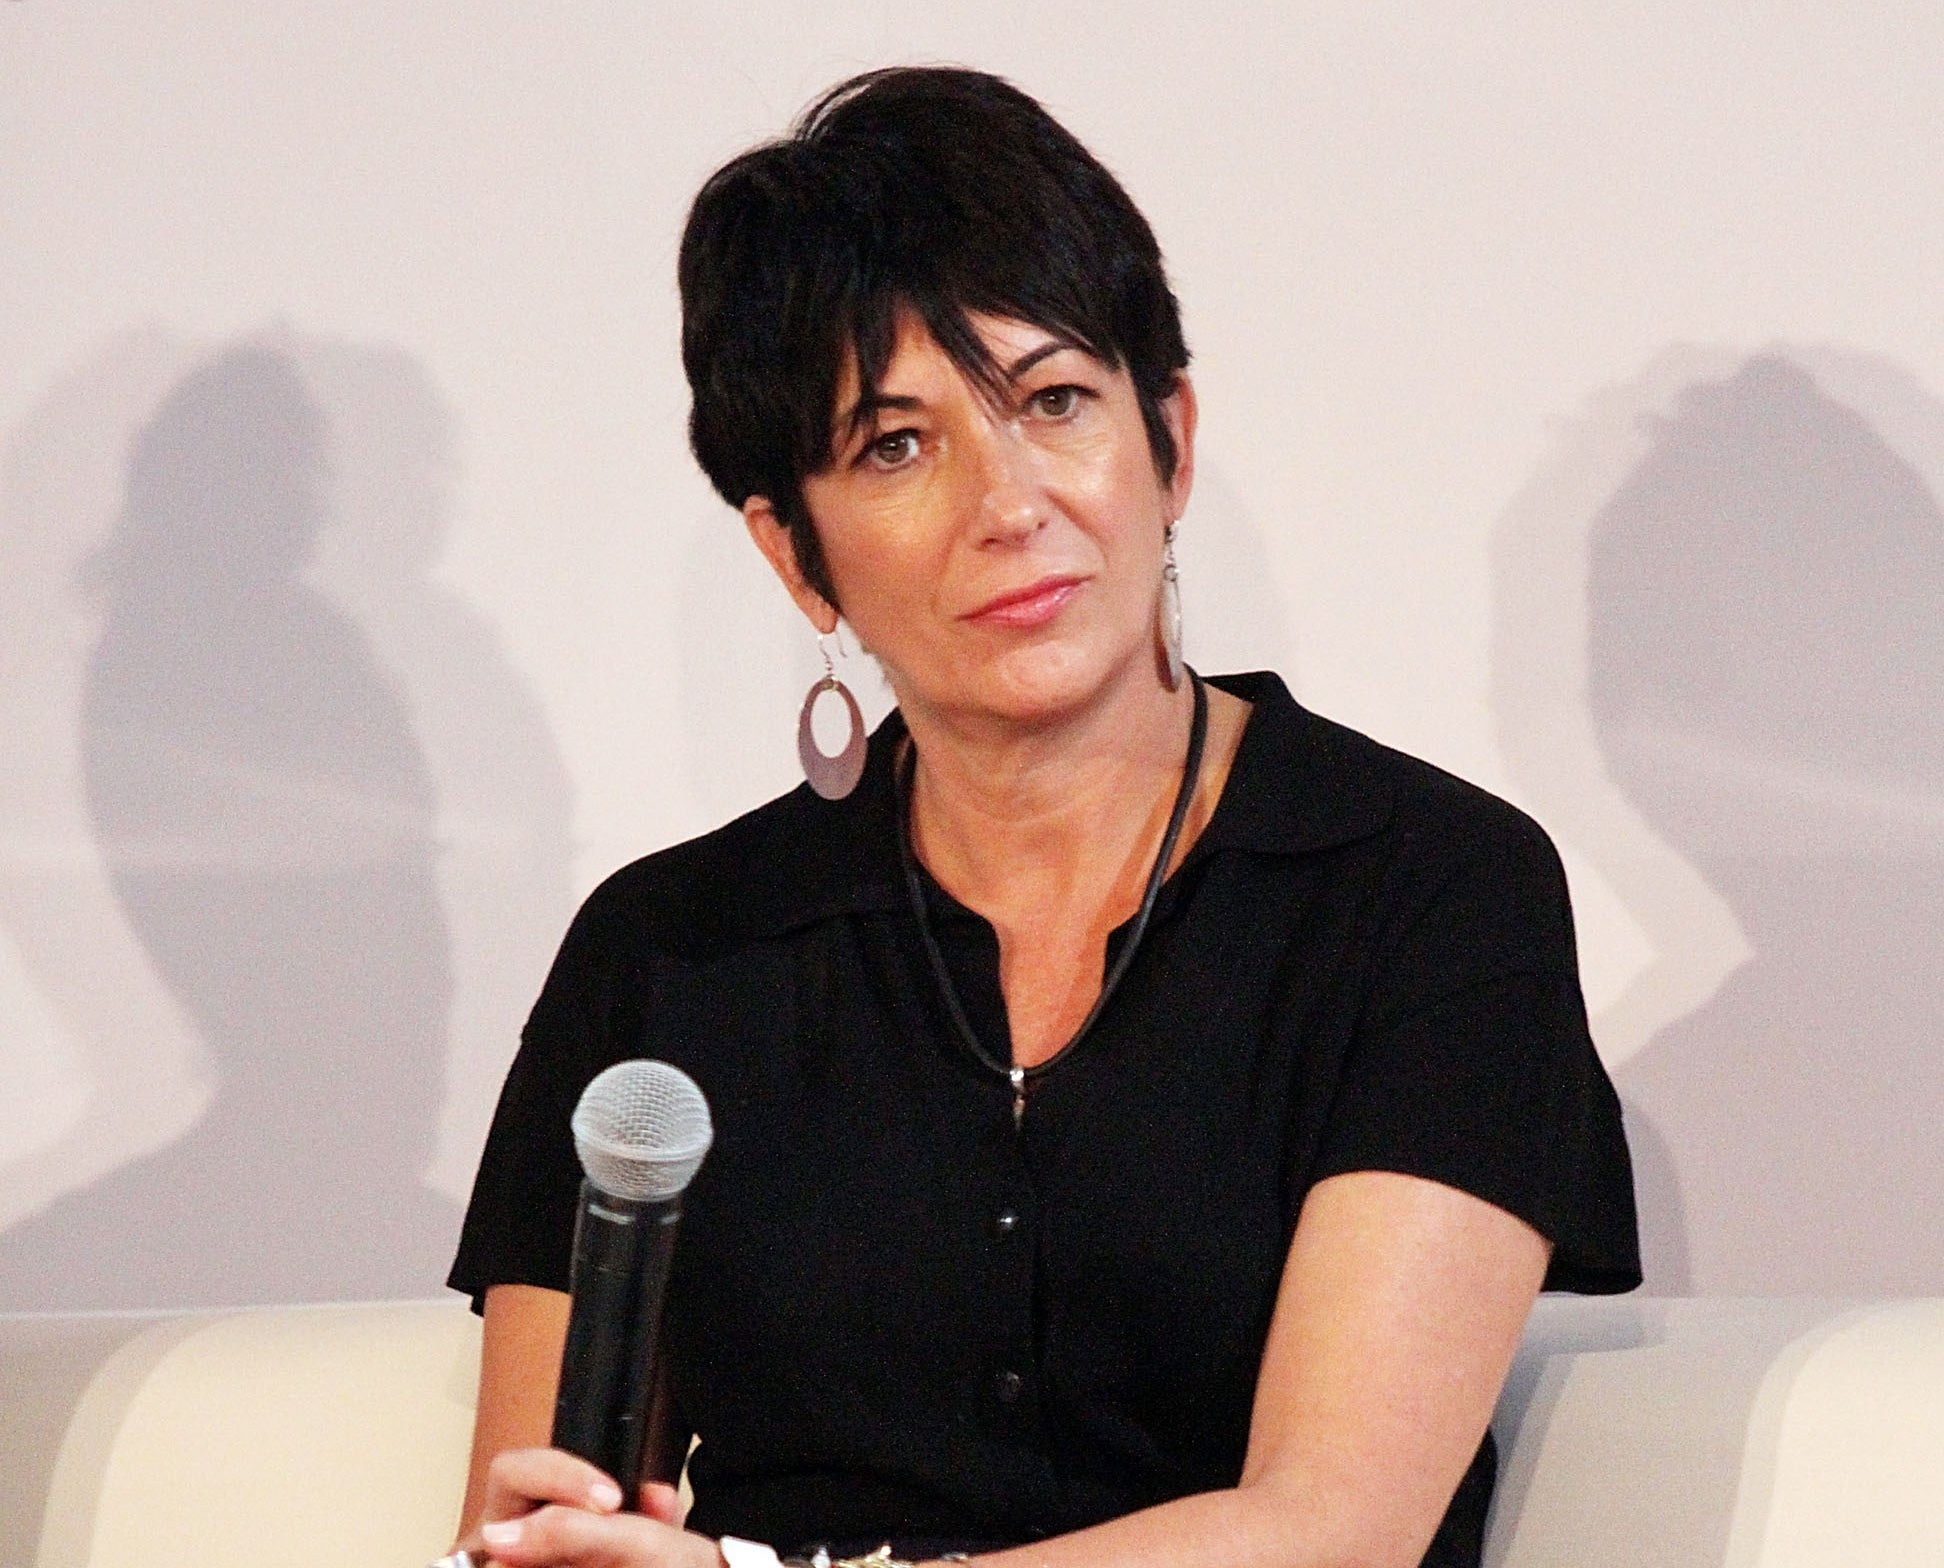 Ghislaine Maxwell - live reading: Jeffrey Epstein relationship details revealed as court documents unsealed - independent